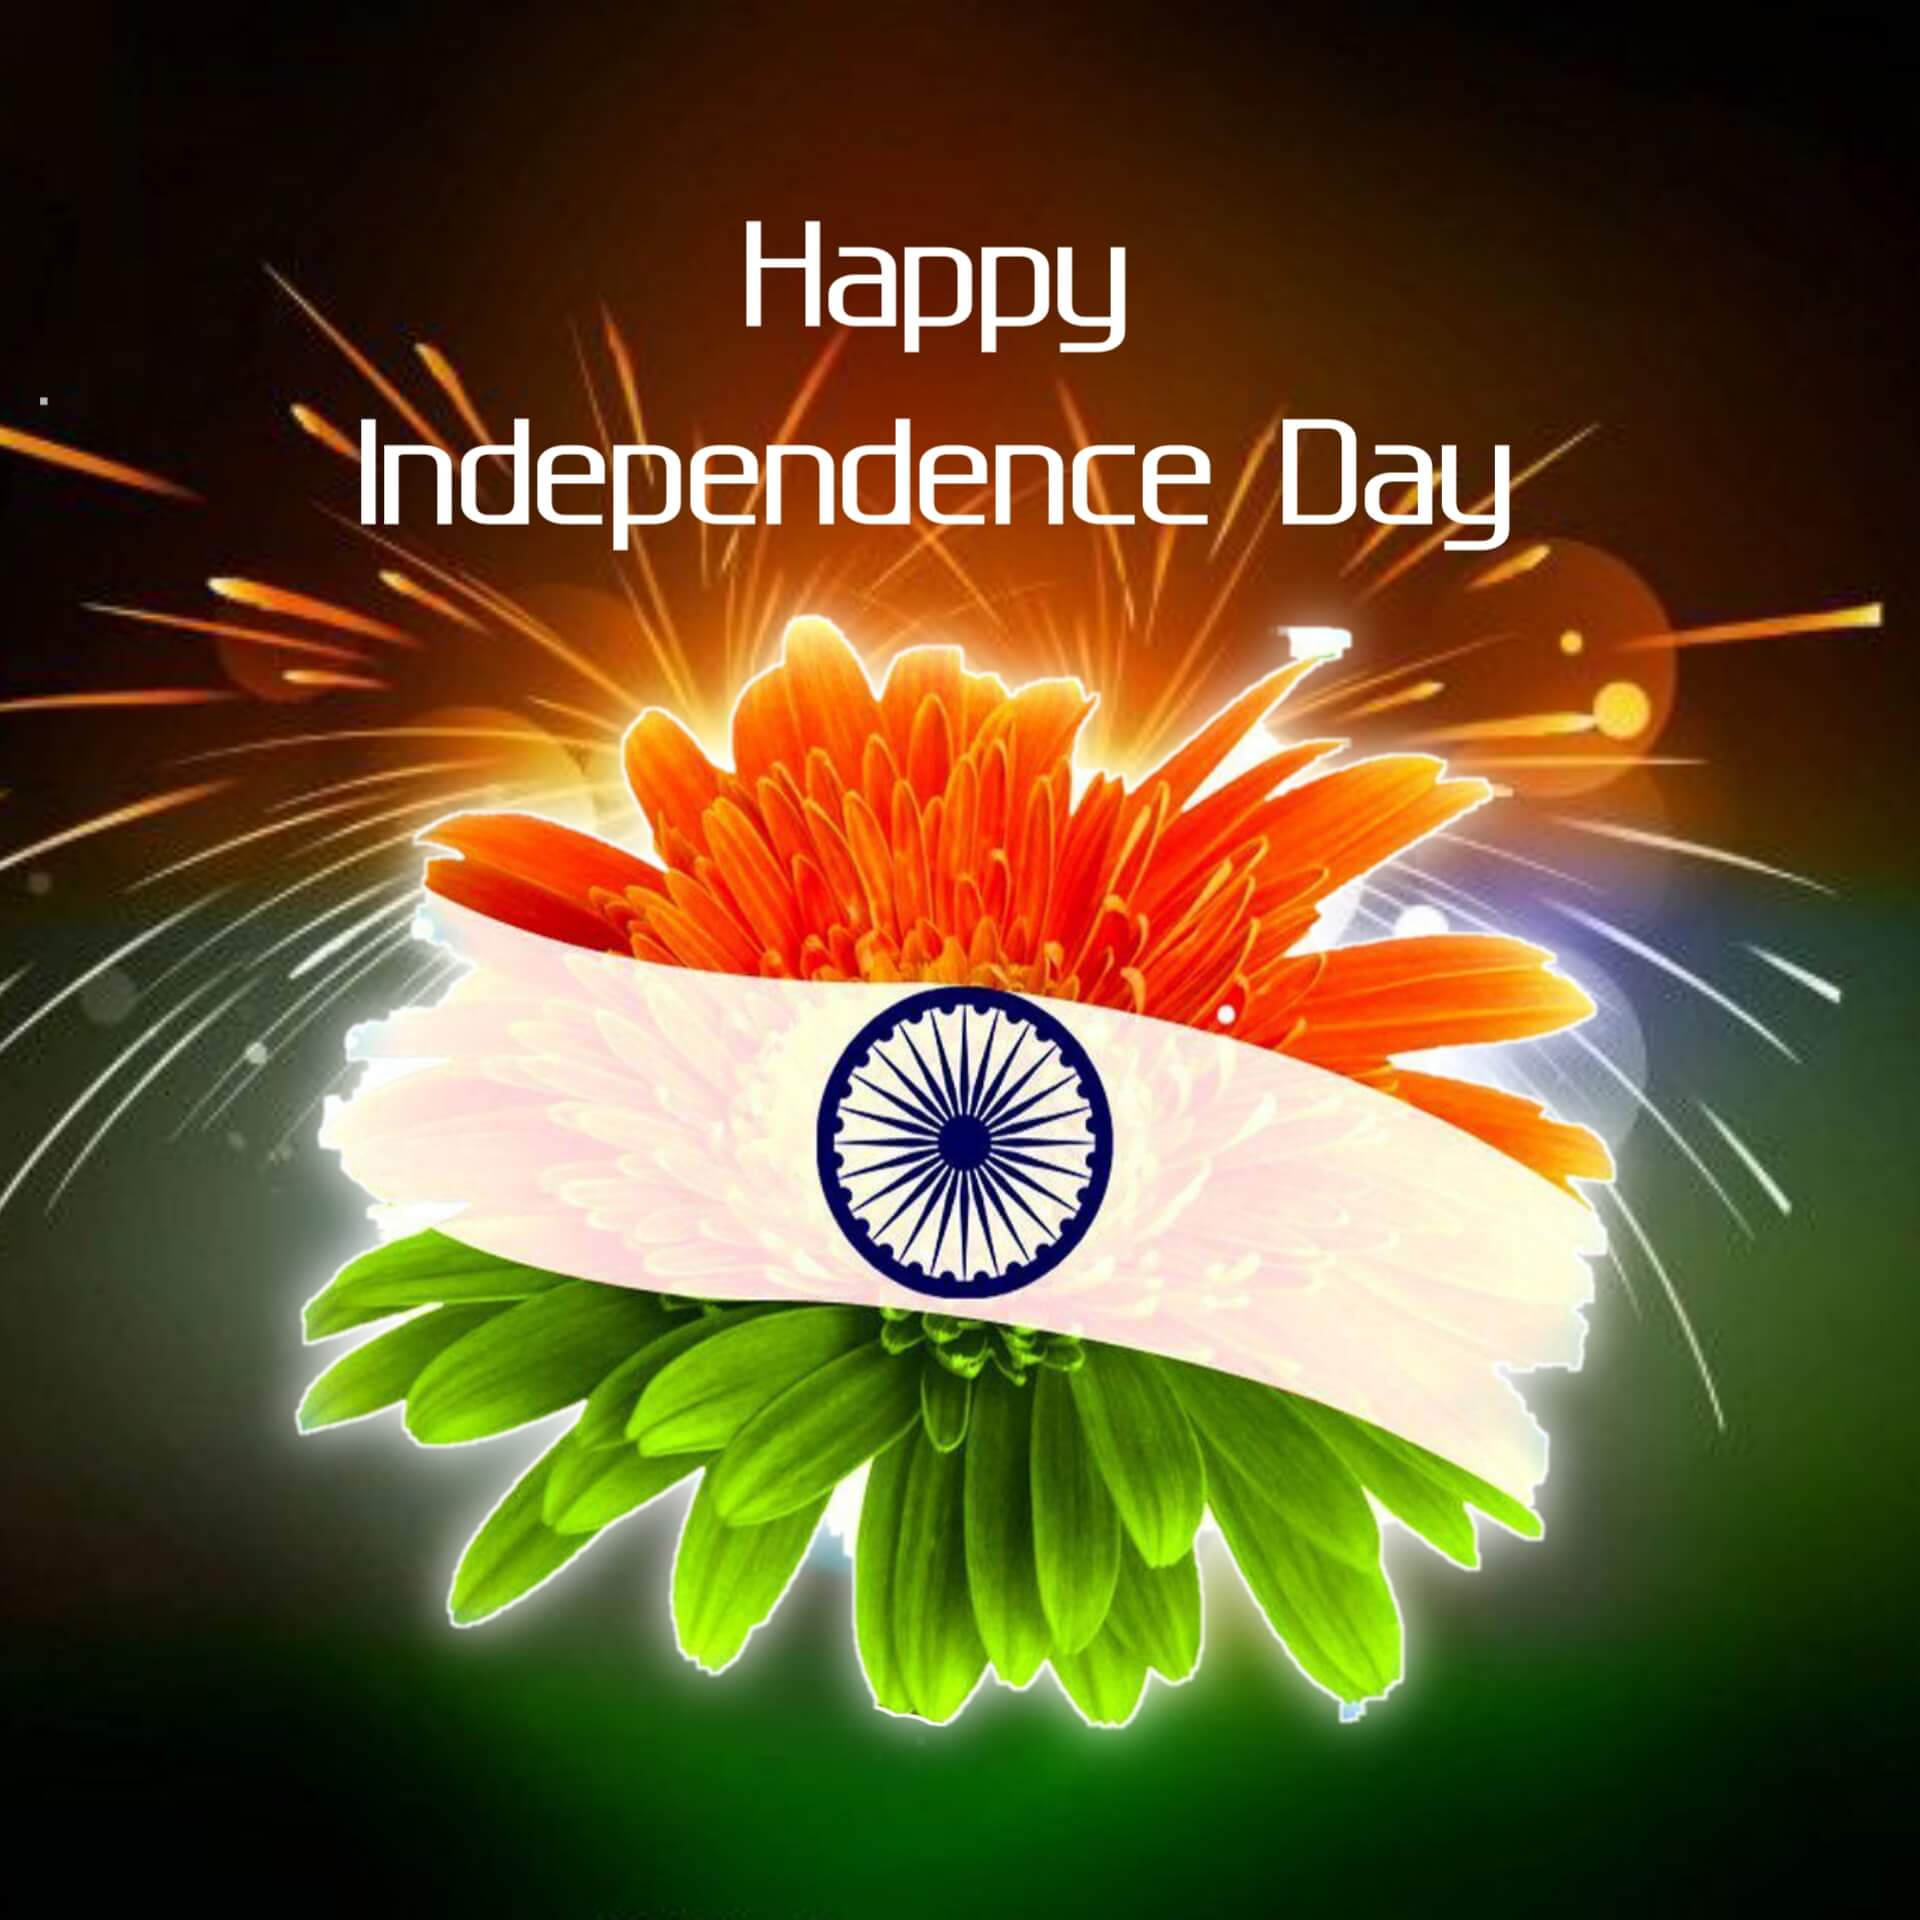 Beautiful Independence Day Image For WhatsApp